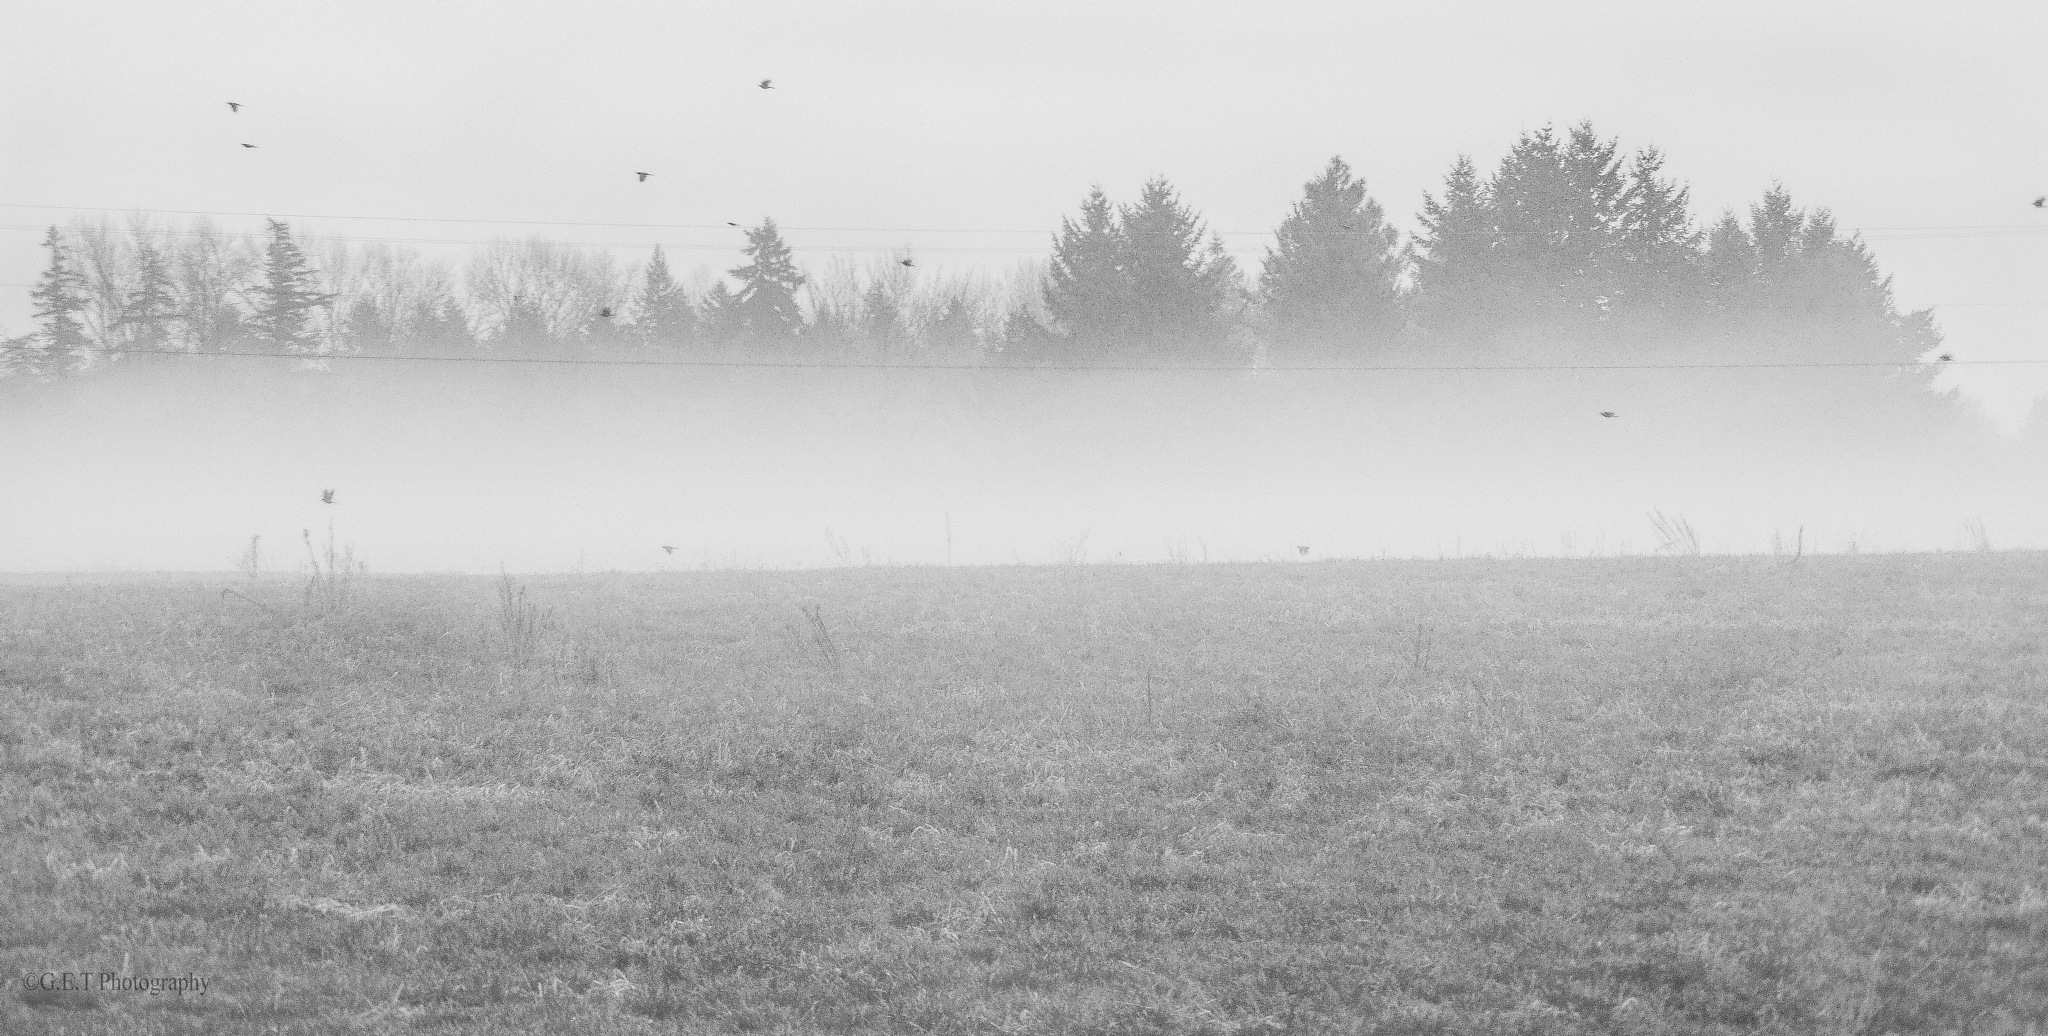 Morning Fog  by Gregory Thomas